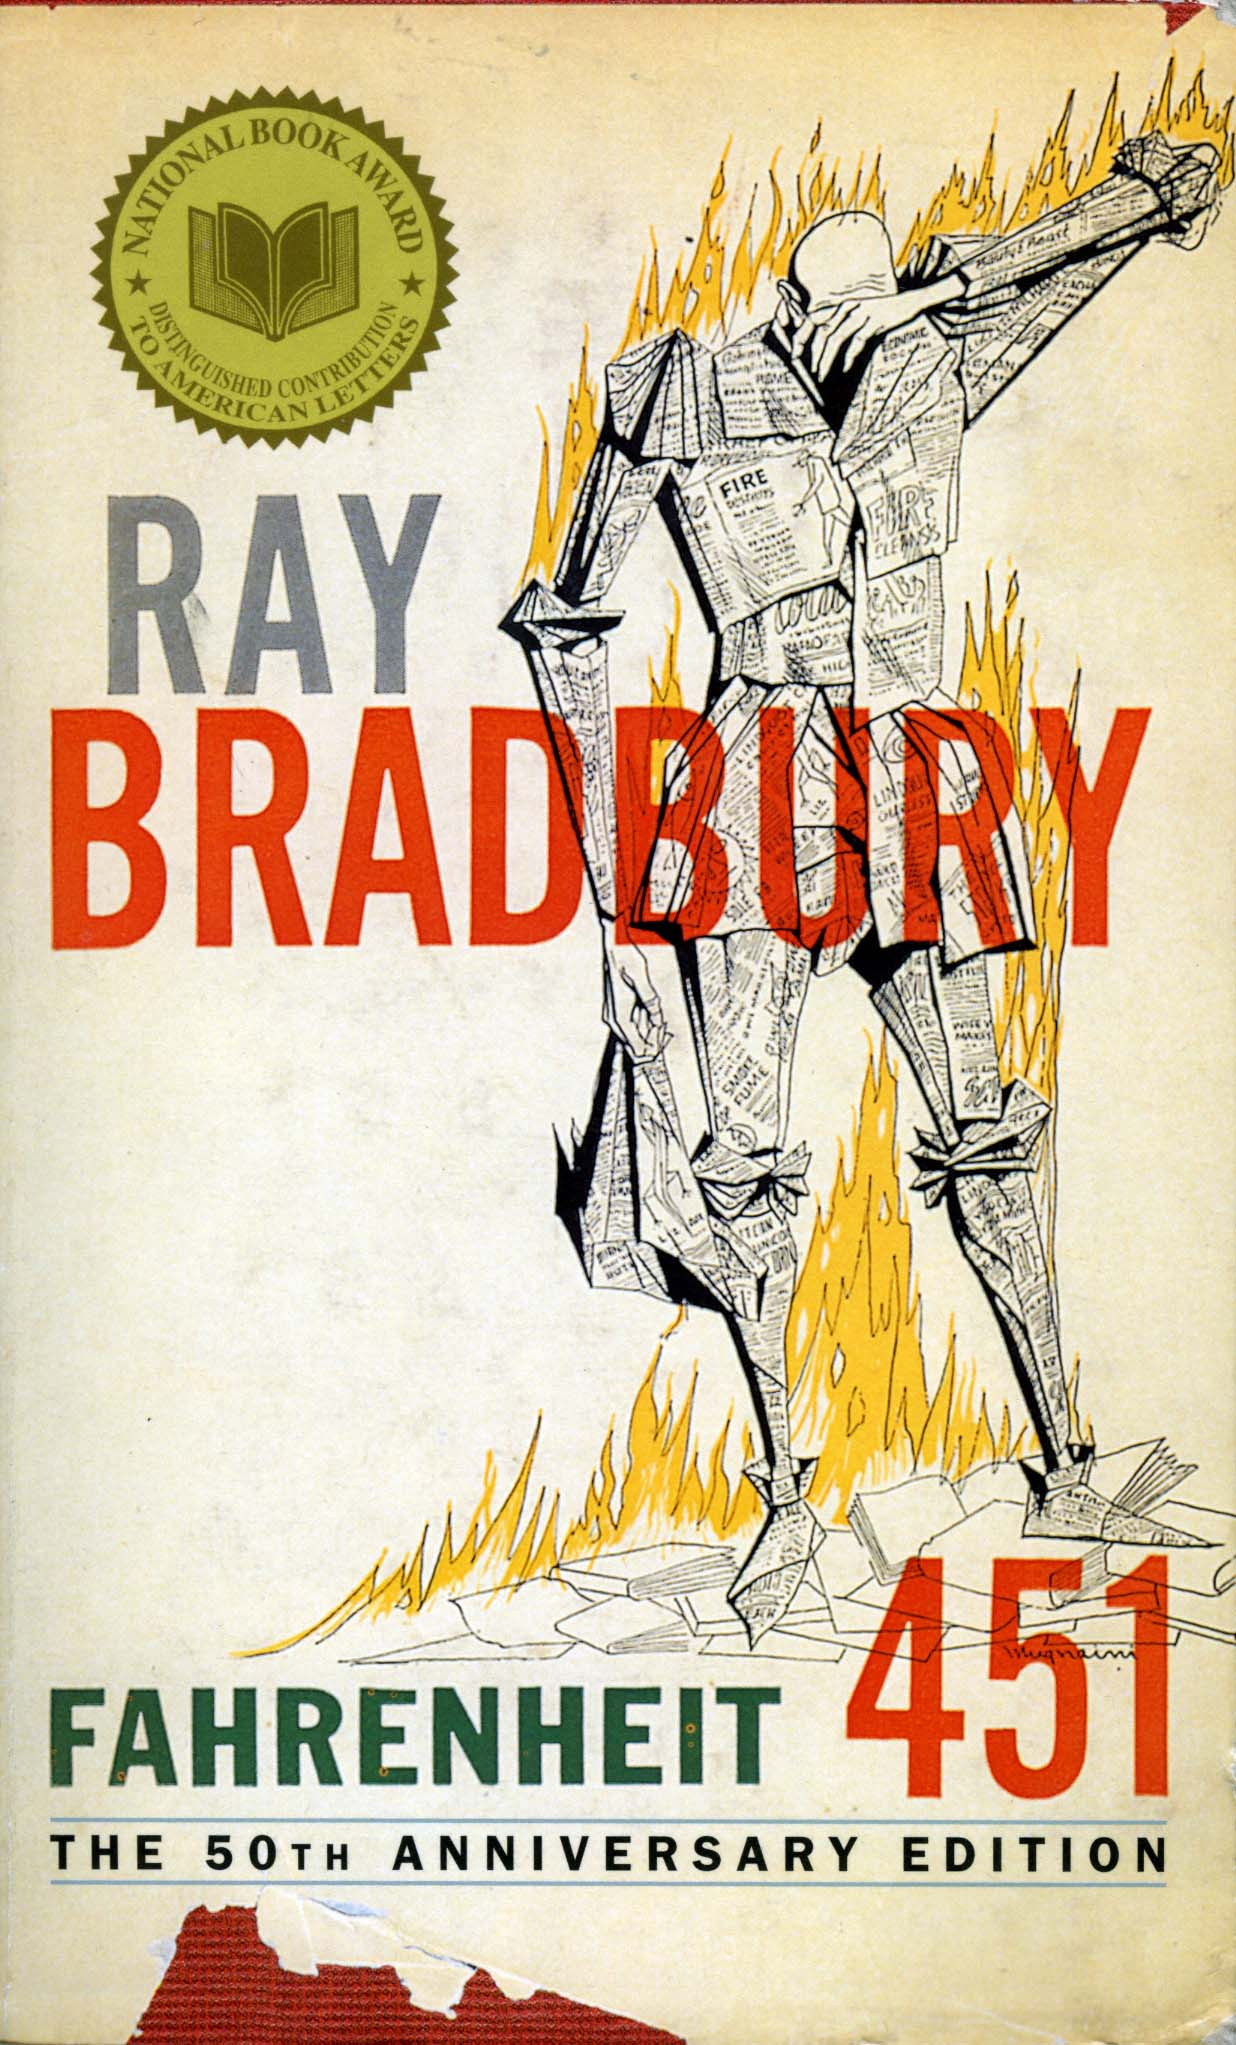 fahrenheit 451 and science fiction Summary: we have entered the crazy years, as predicted long ago by science fiction author robert heinlein our lives are like scenes from ray bradbury's fahrenheit 451.